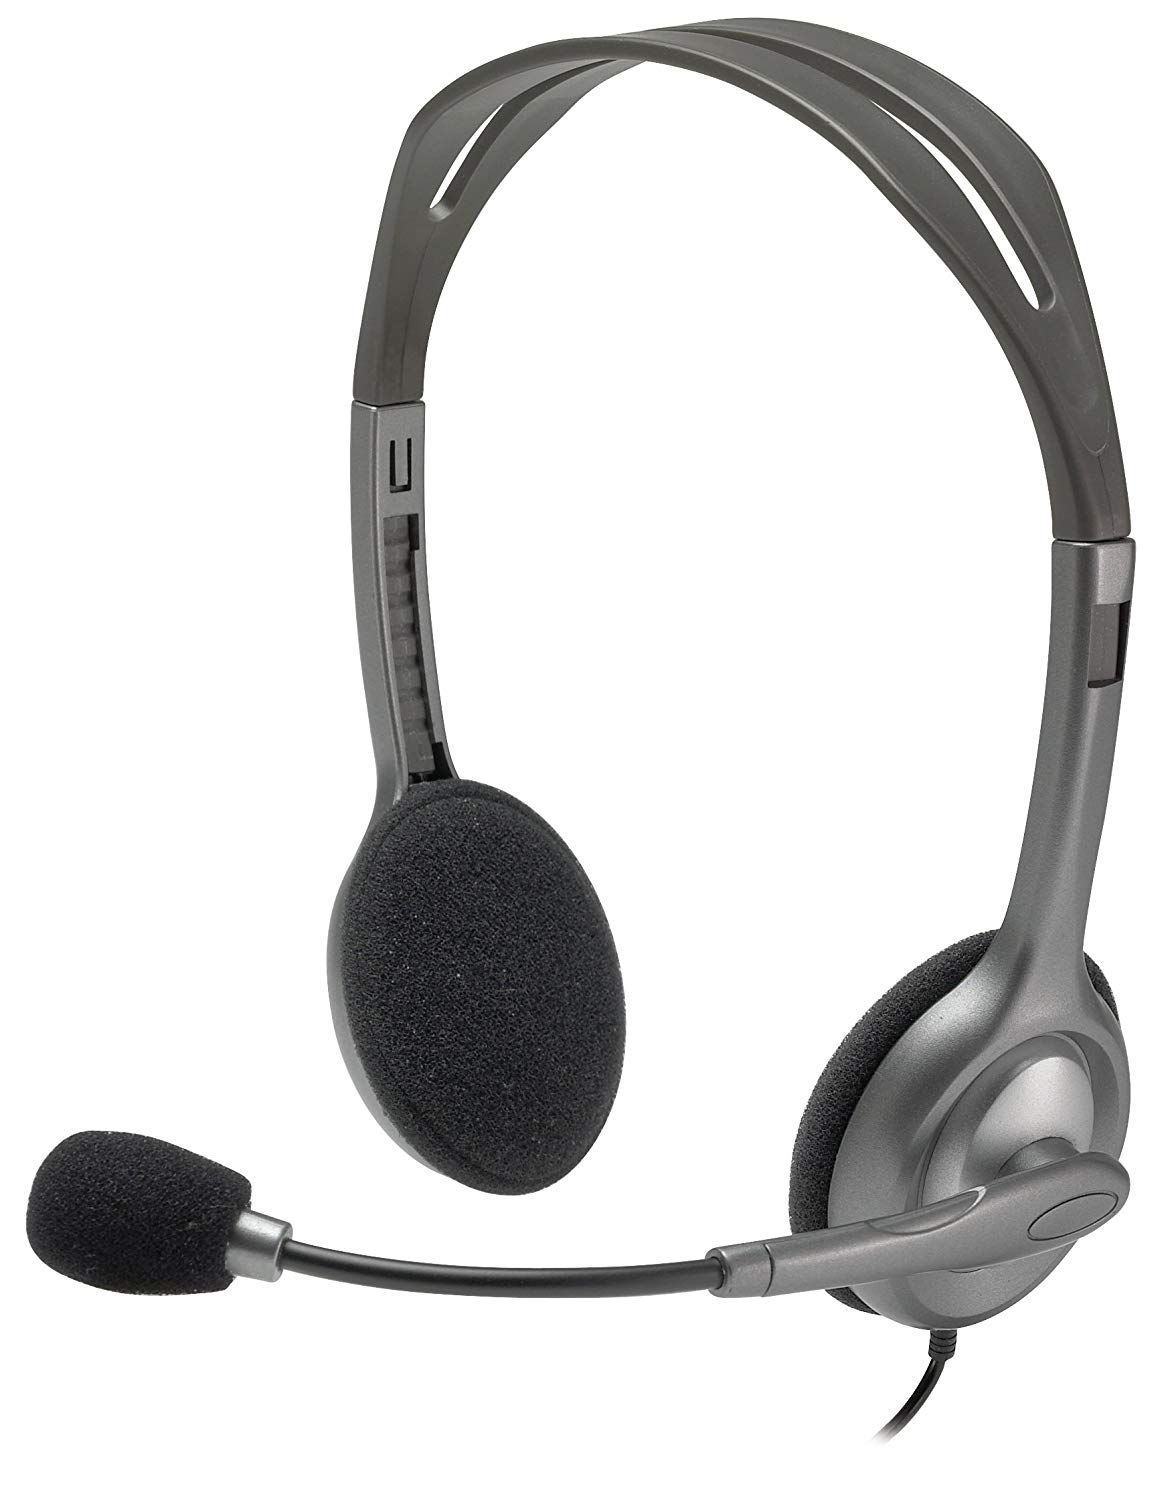 Logitech Stereo Headset H111 | My wishes | Gaming headset